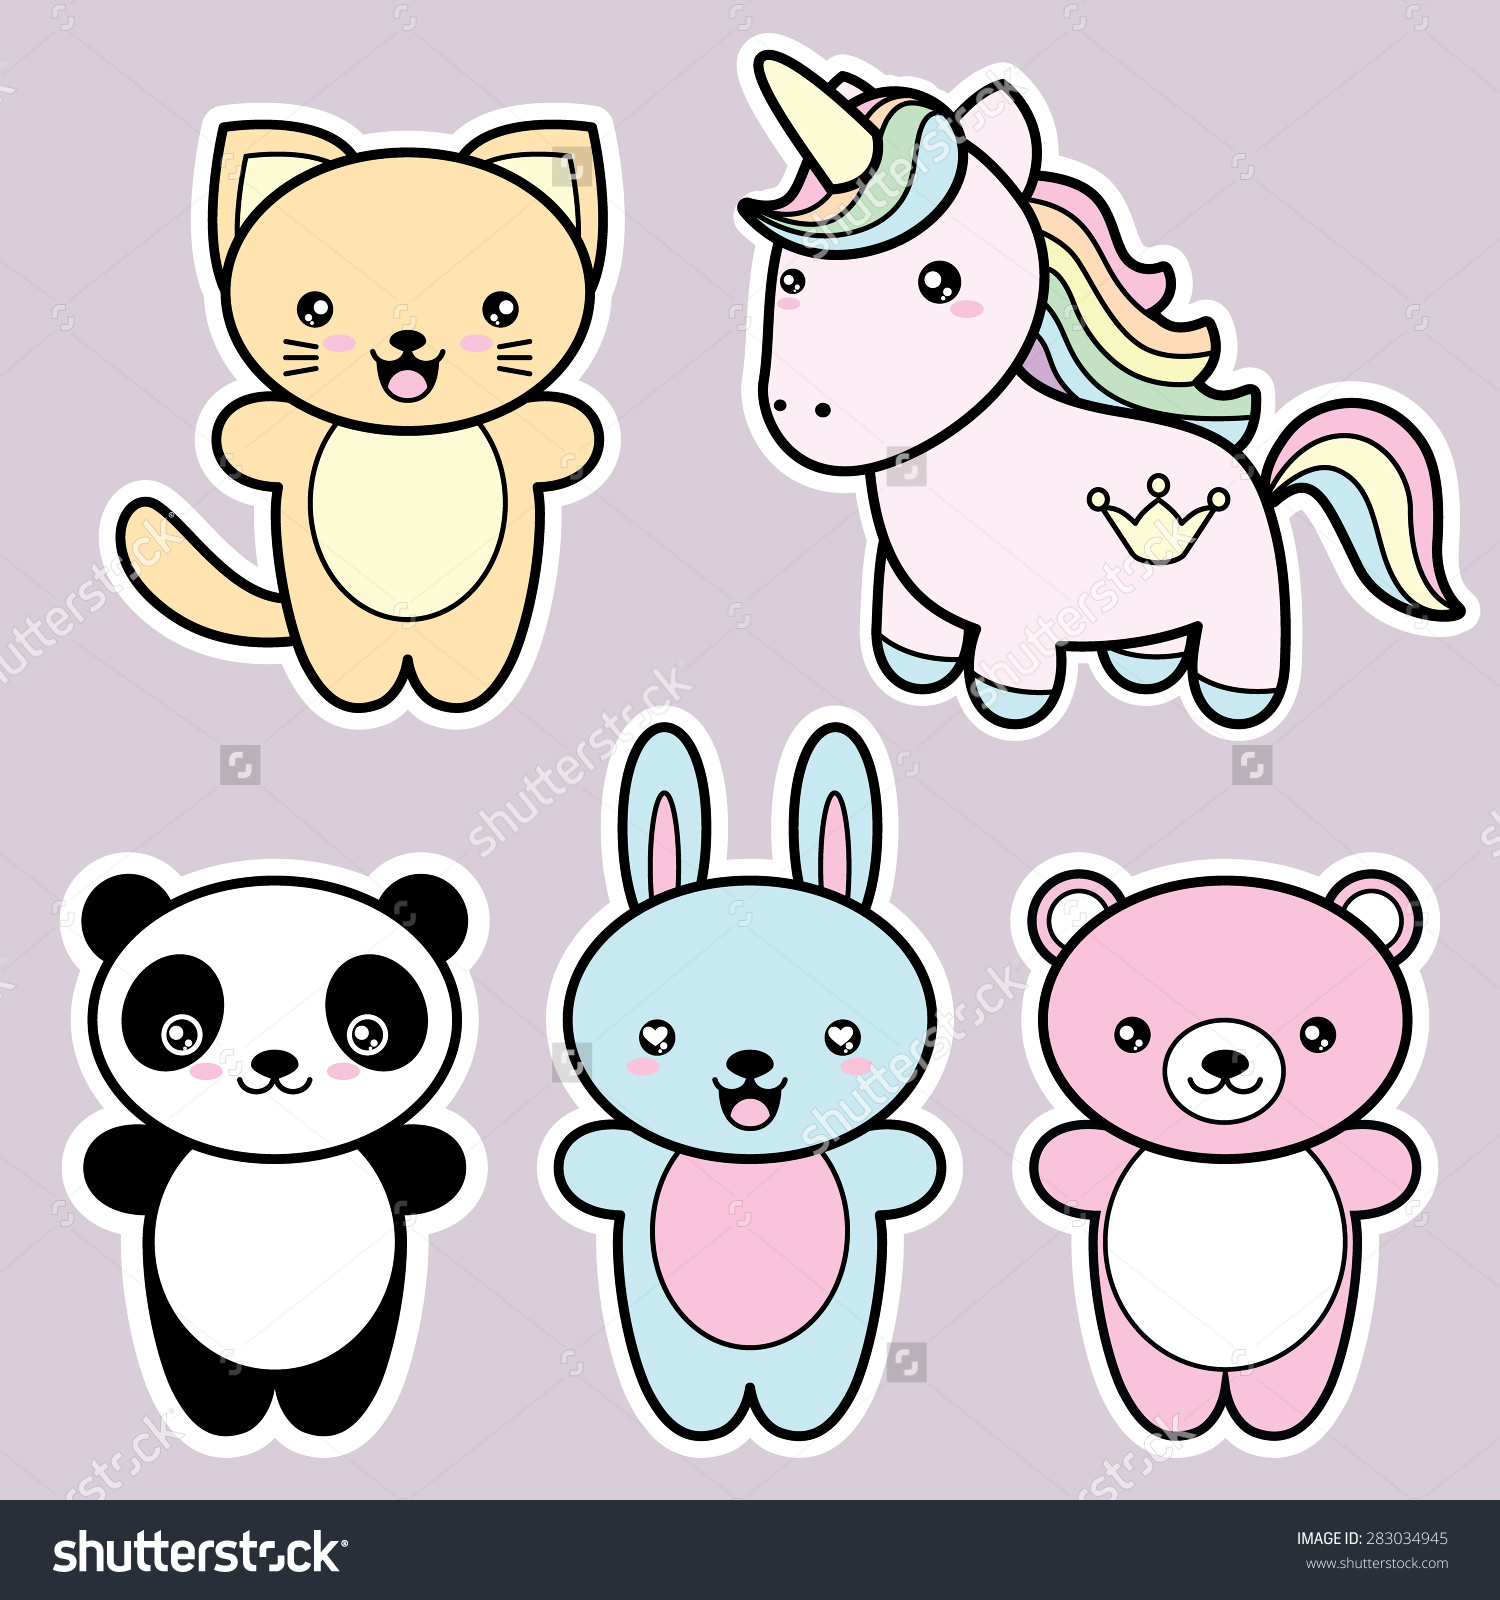 stock-vector-set-collection-of-cute-kawaii-style-happy-smiling-animals-decorative-design-elements-in-doodle-283034945